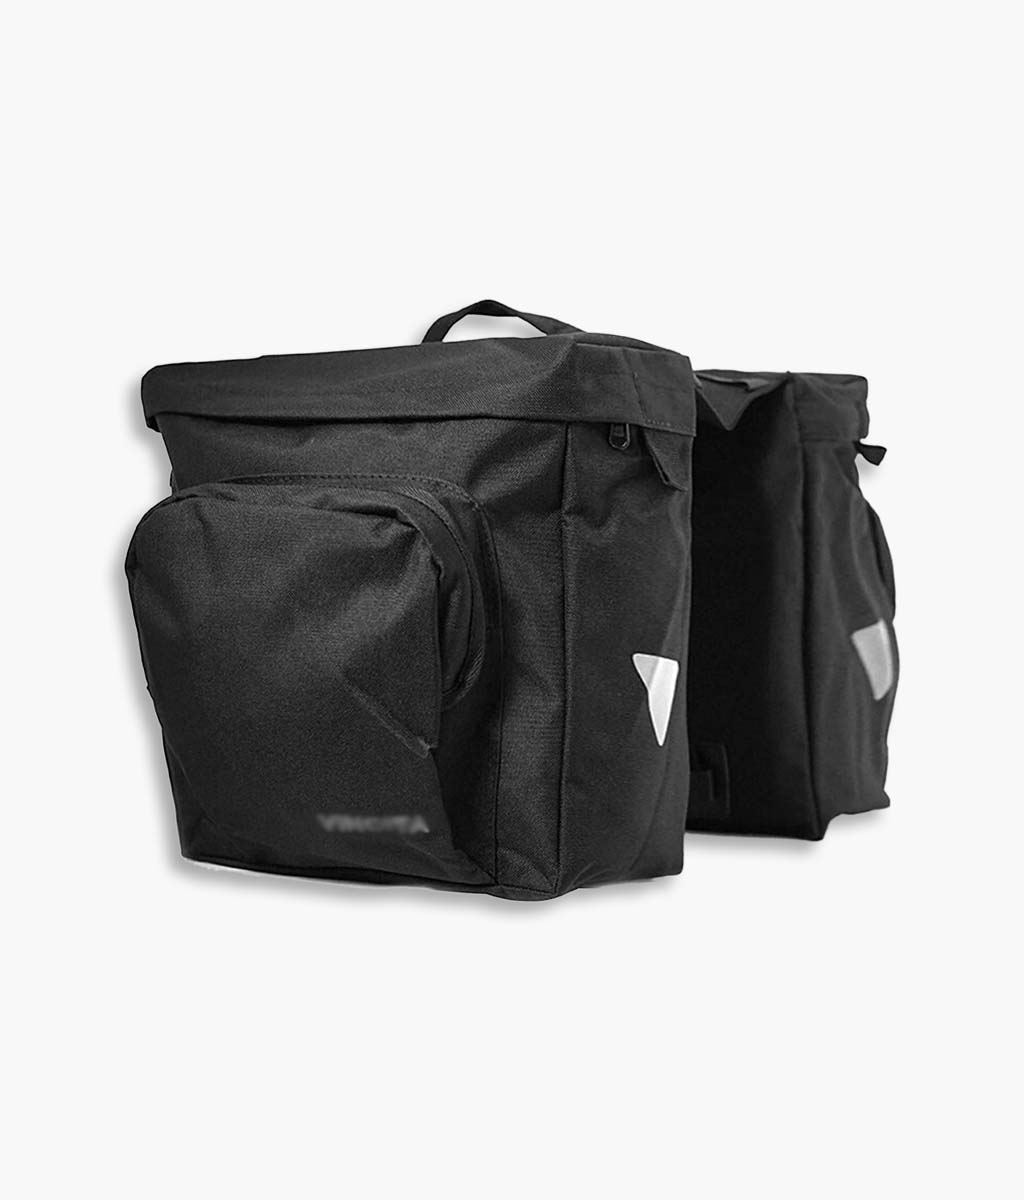 Bike Panniers Waterproof Bag